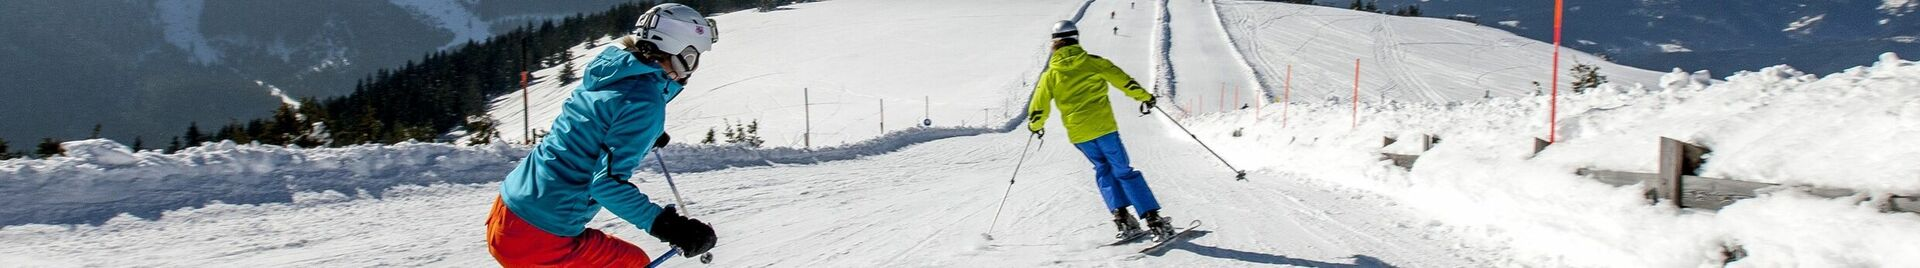 Skiing at Stuhleck